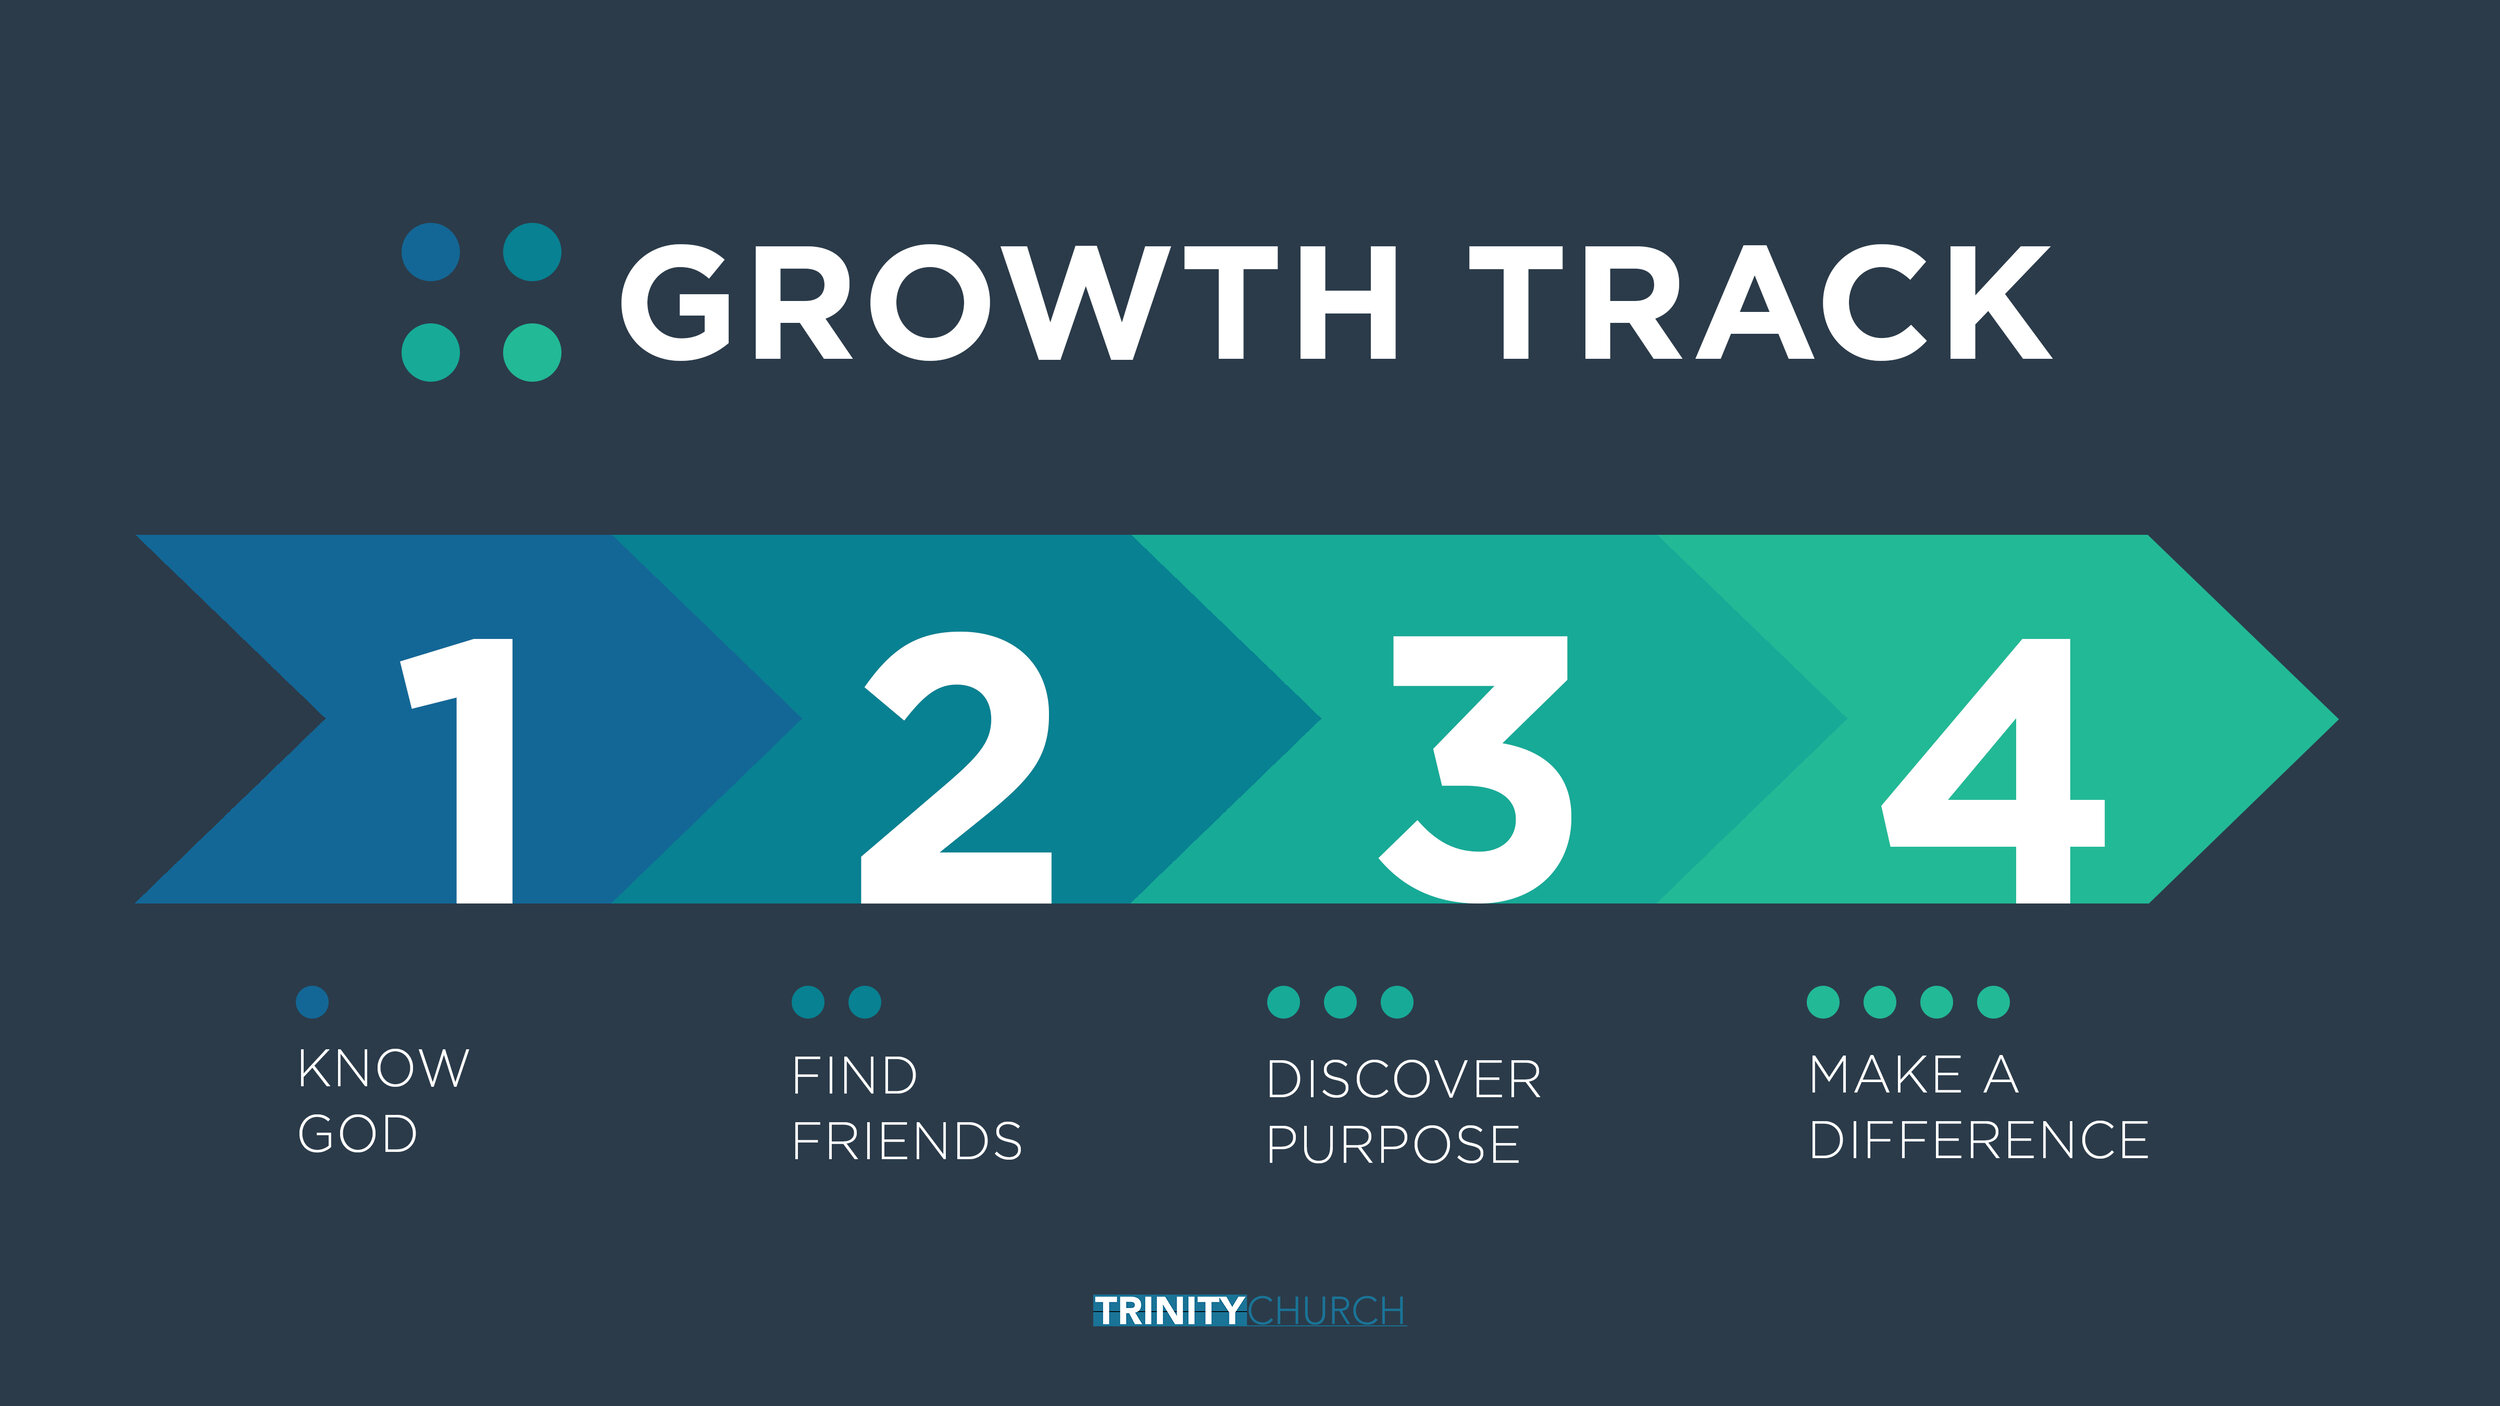 Growth Track Logo 16x9.jpg